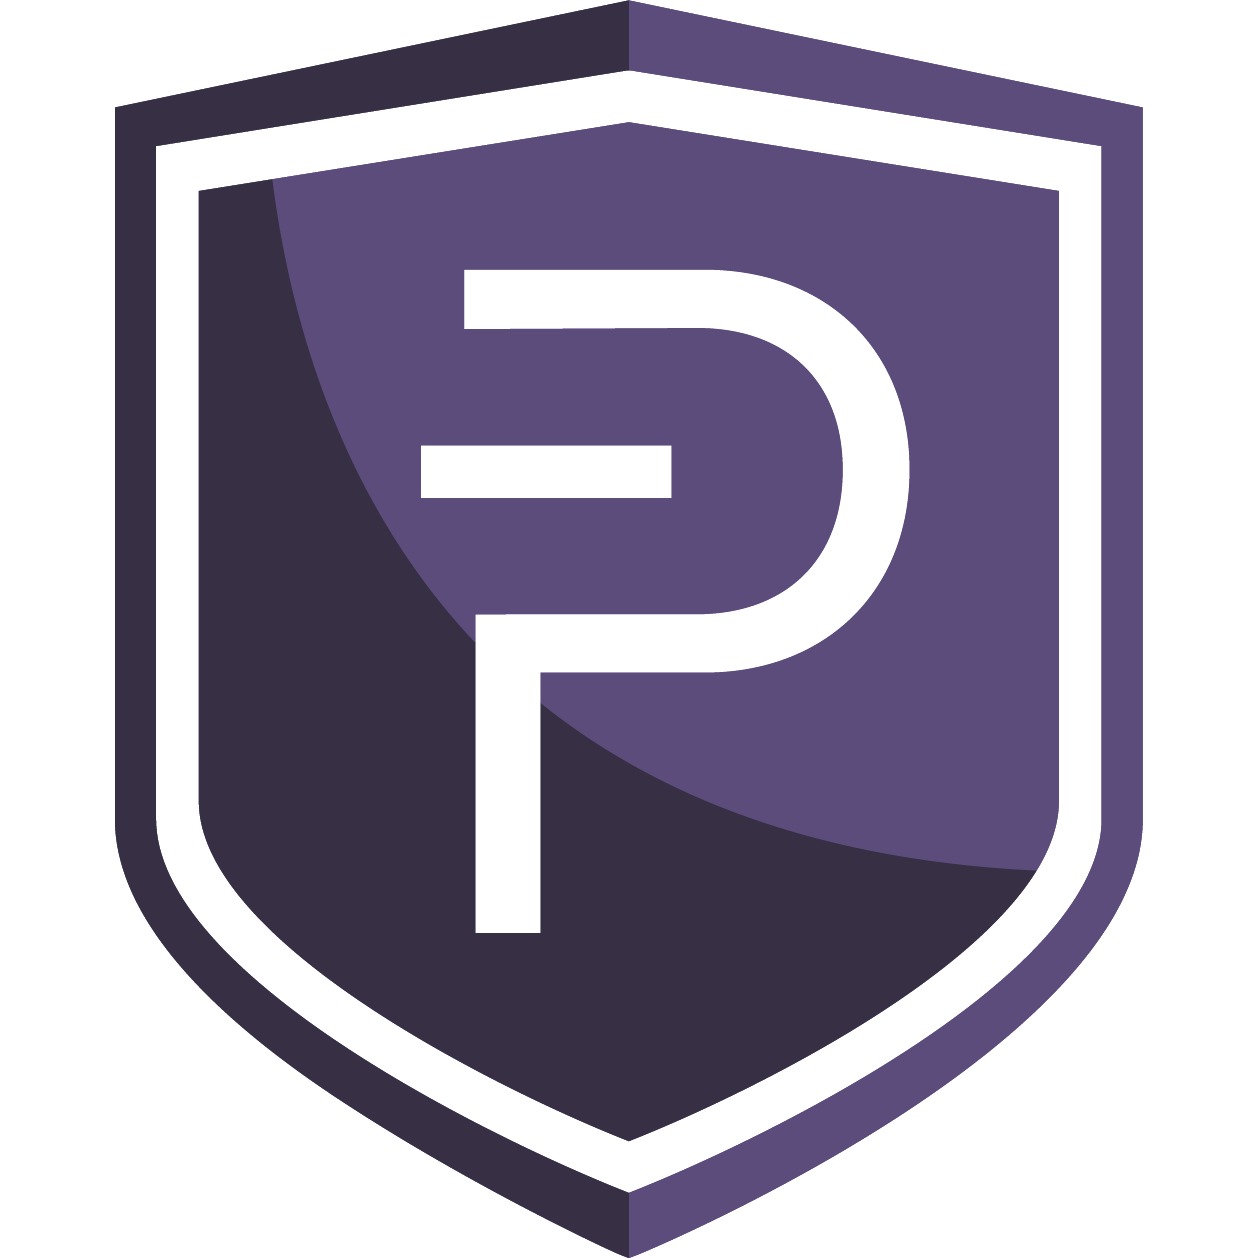 Learn more about payment processing tools for PIVX, PIVX coin (PIVX) on the Coinpayments net website.